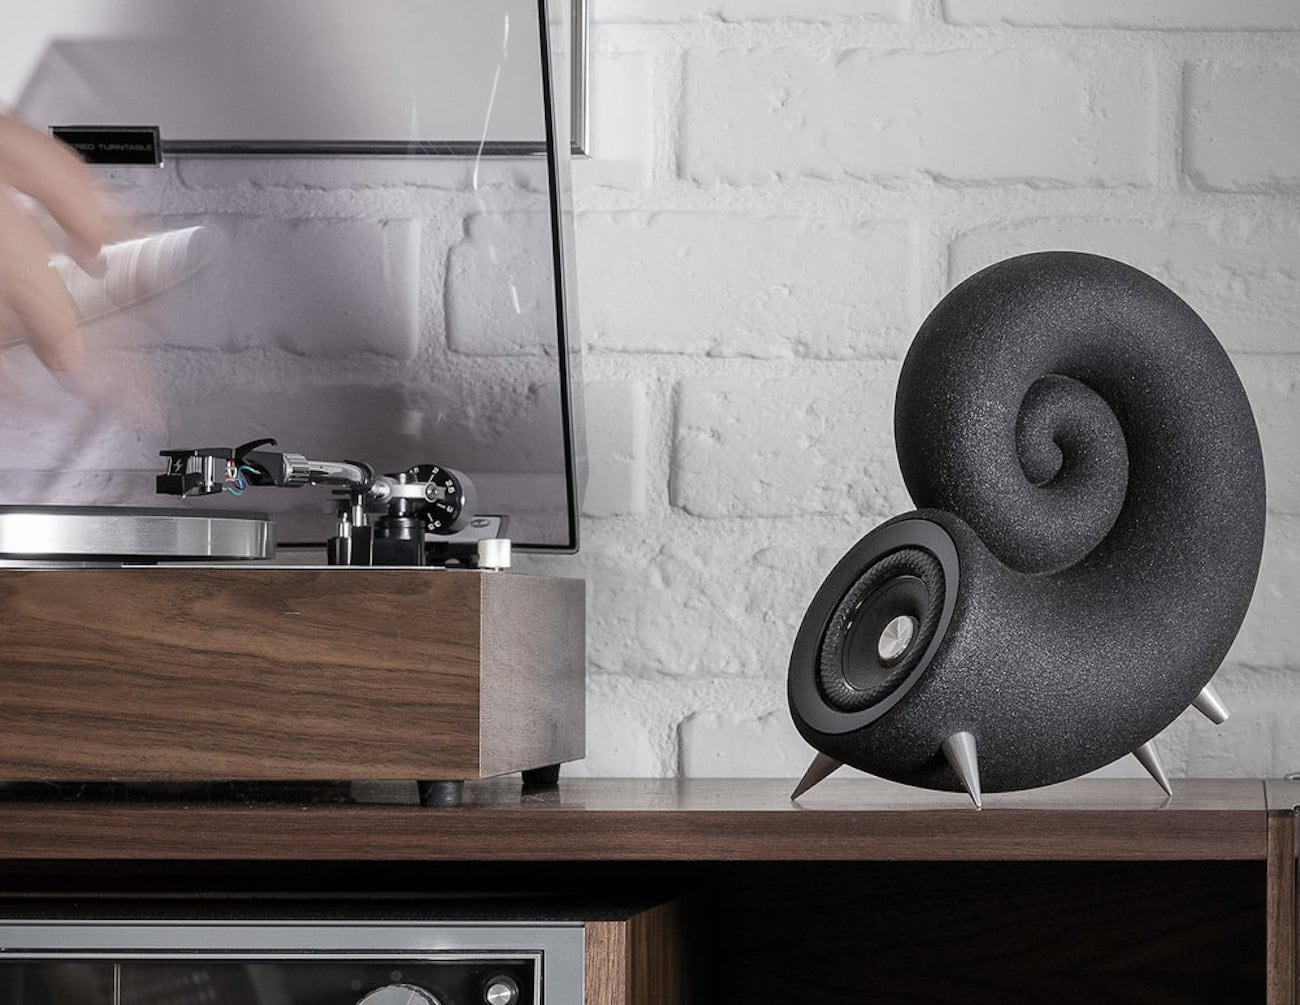 DEEPTIME Spirula 3D Printed Sand Speakers are made from silica sand